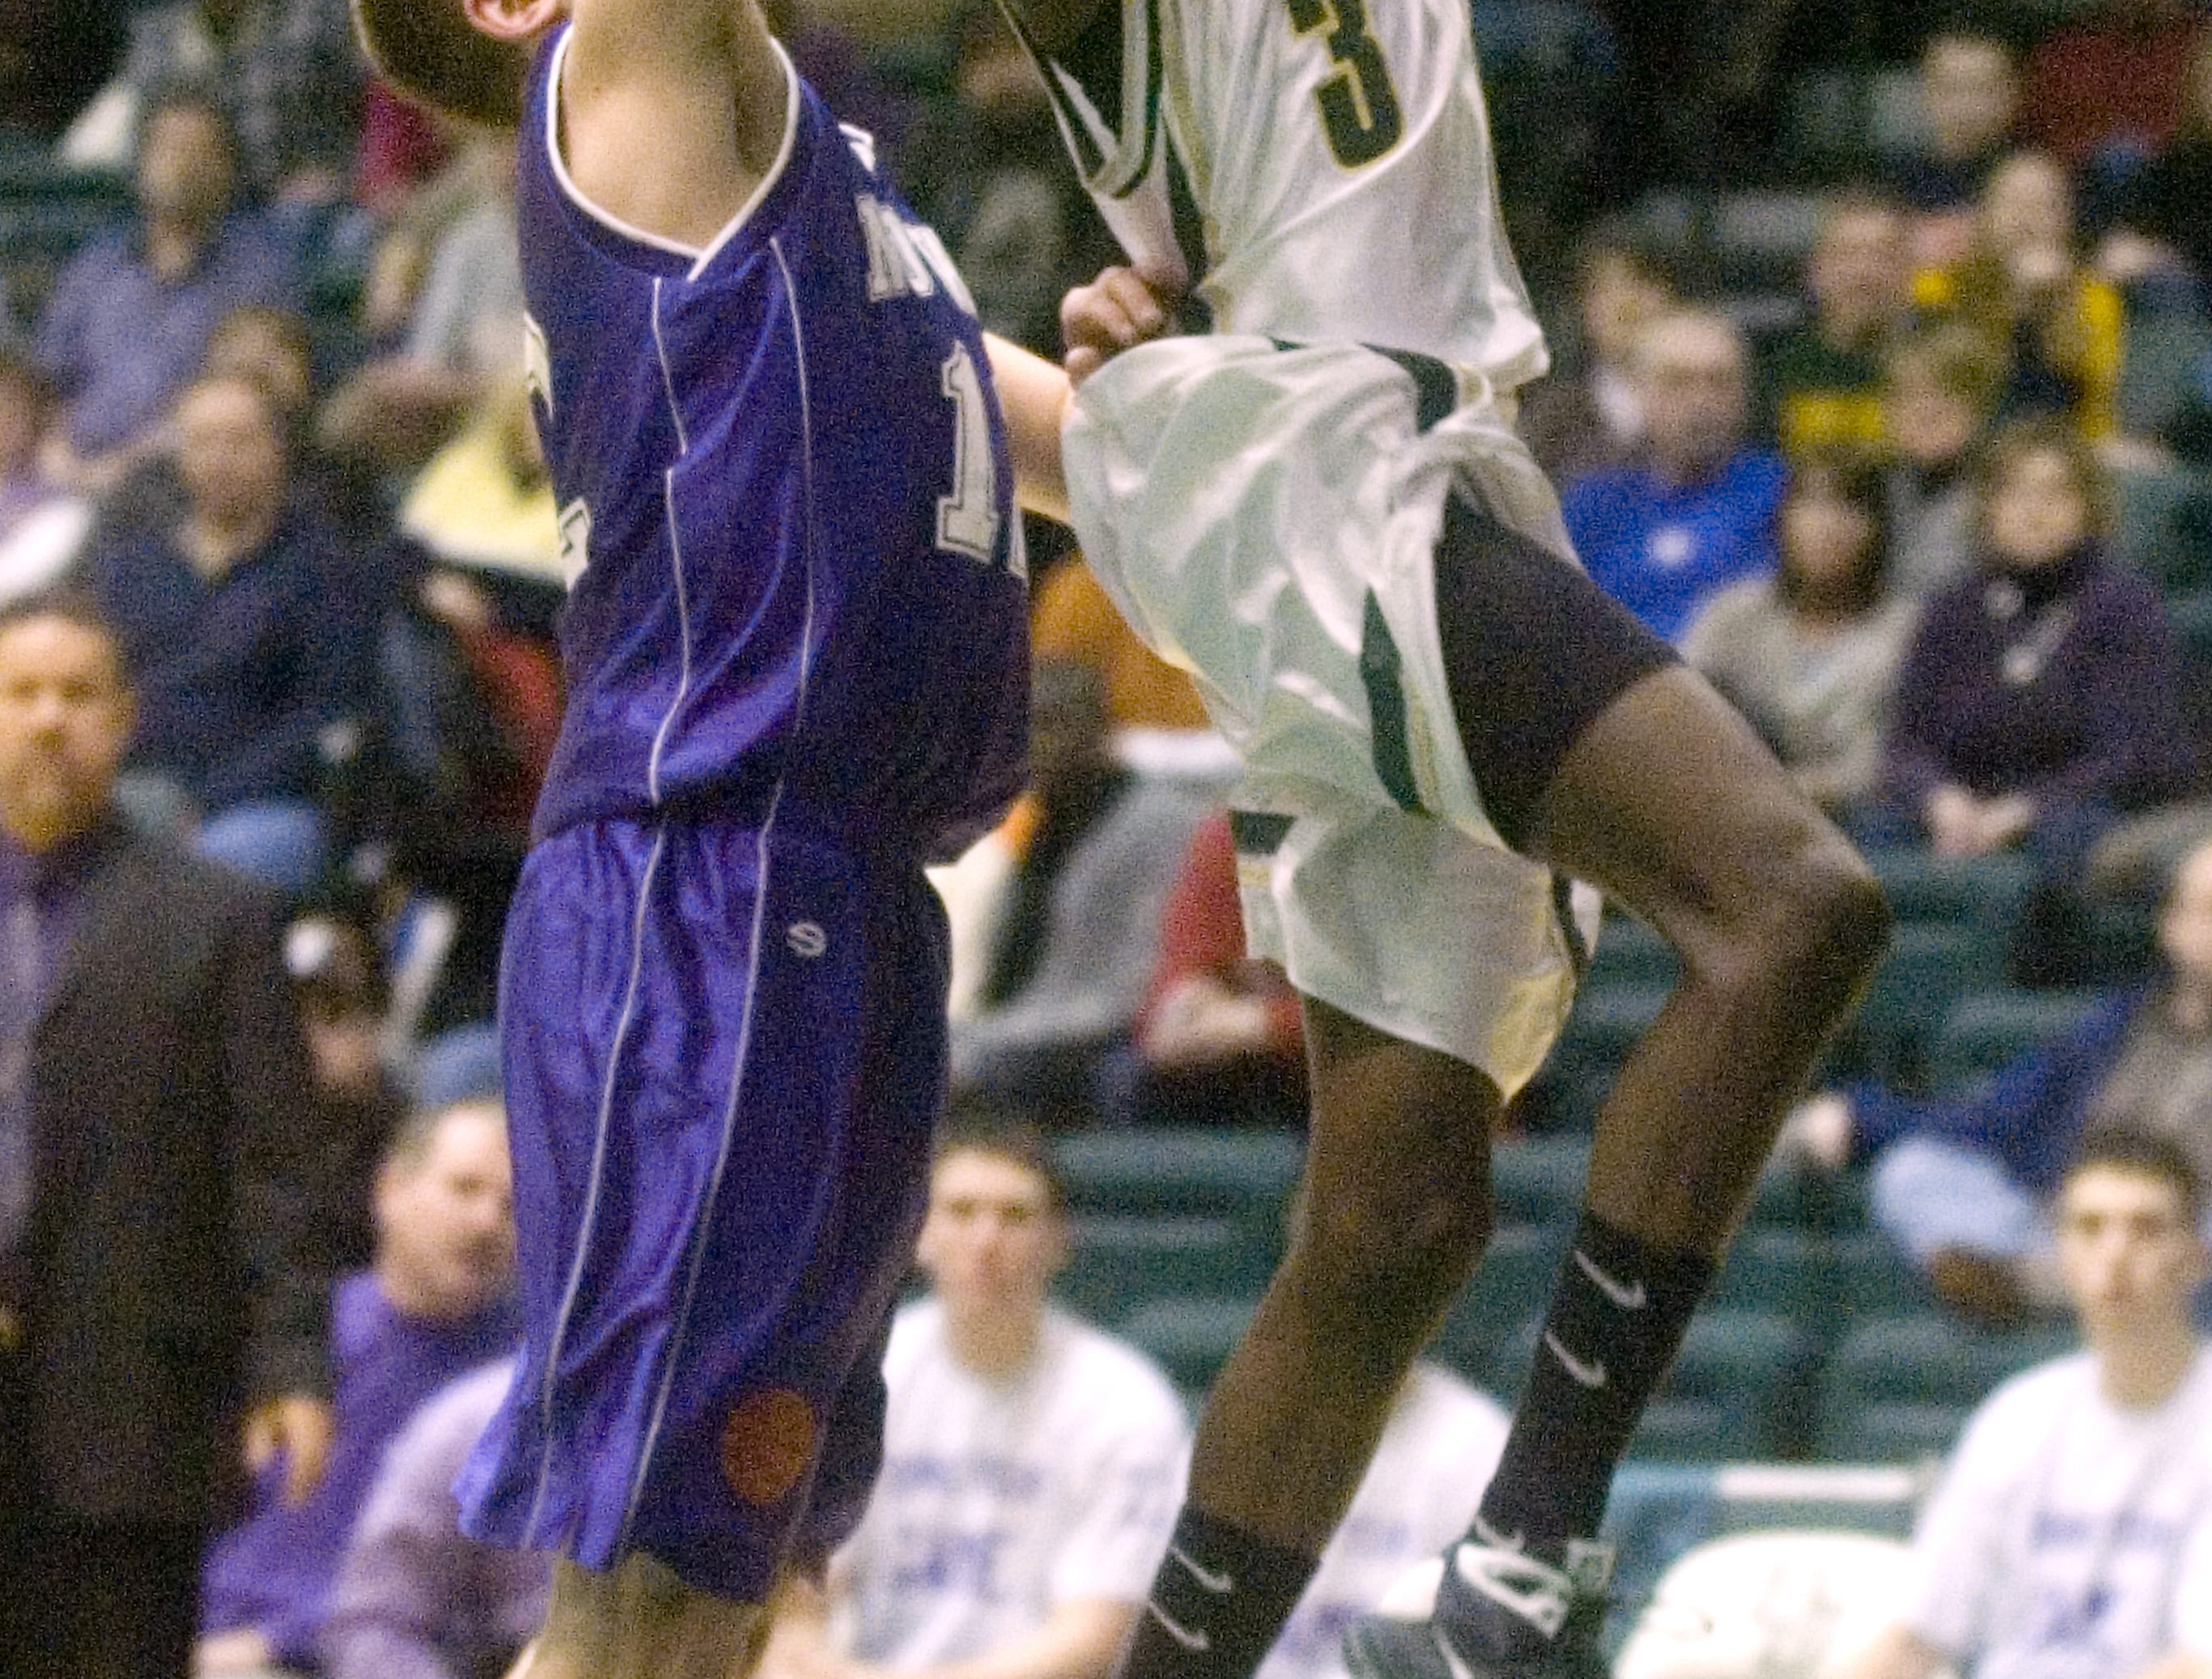 2009: Norwich's Joshua Borfitz. left, tries to stop a shot by Vestal's Richie Sebuharara in the first quarter of Saturday's STAC finals game at the Events Center.